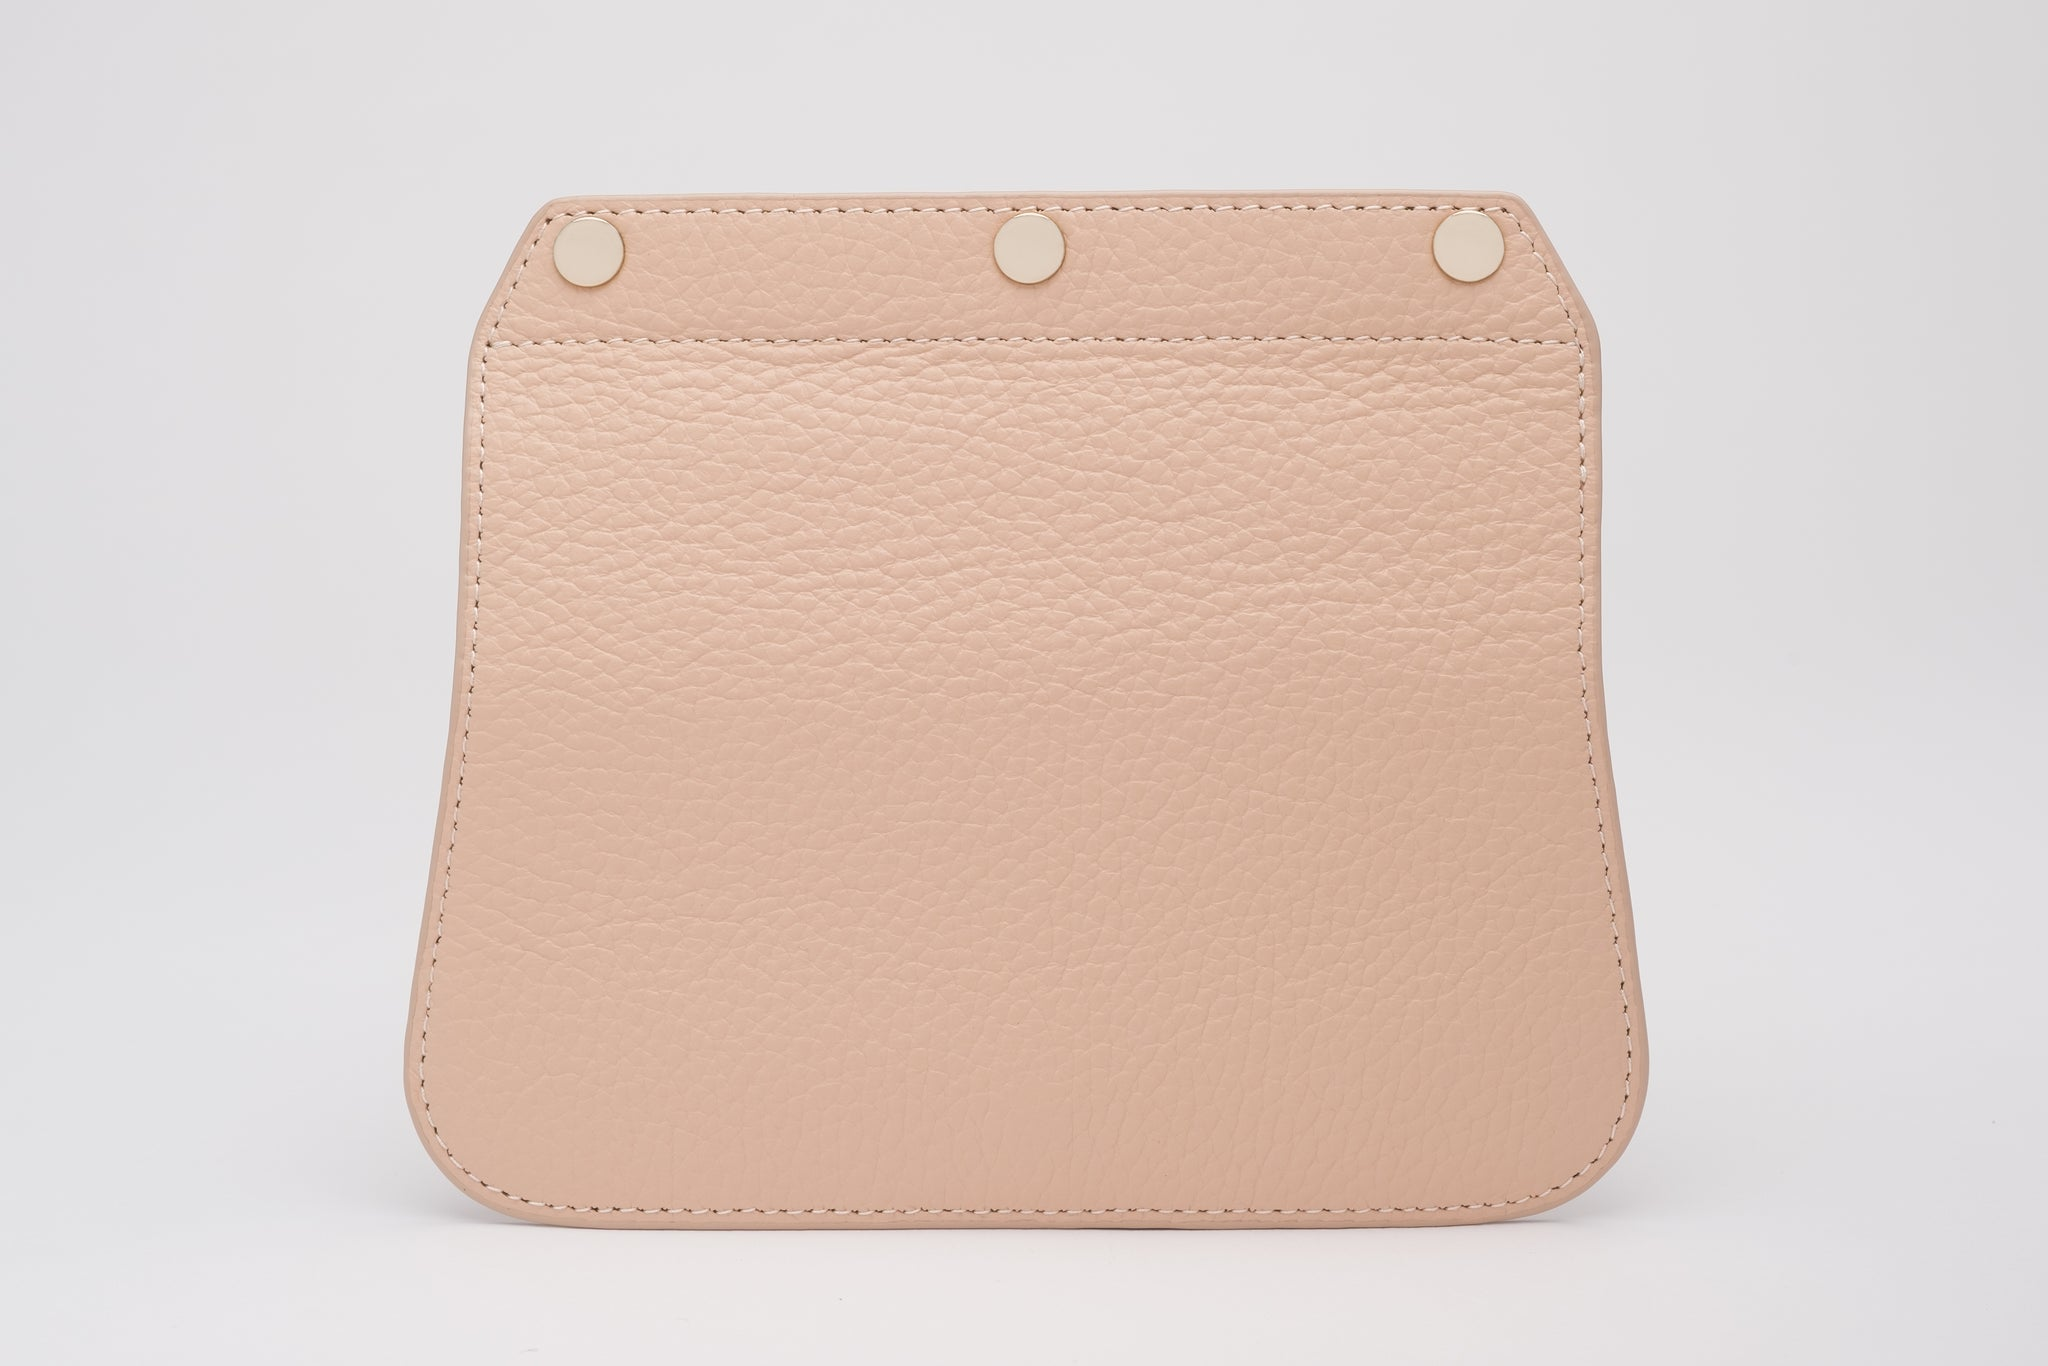 Convertible Handbag Flap - Nude